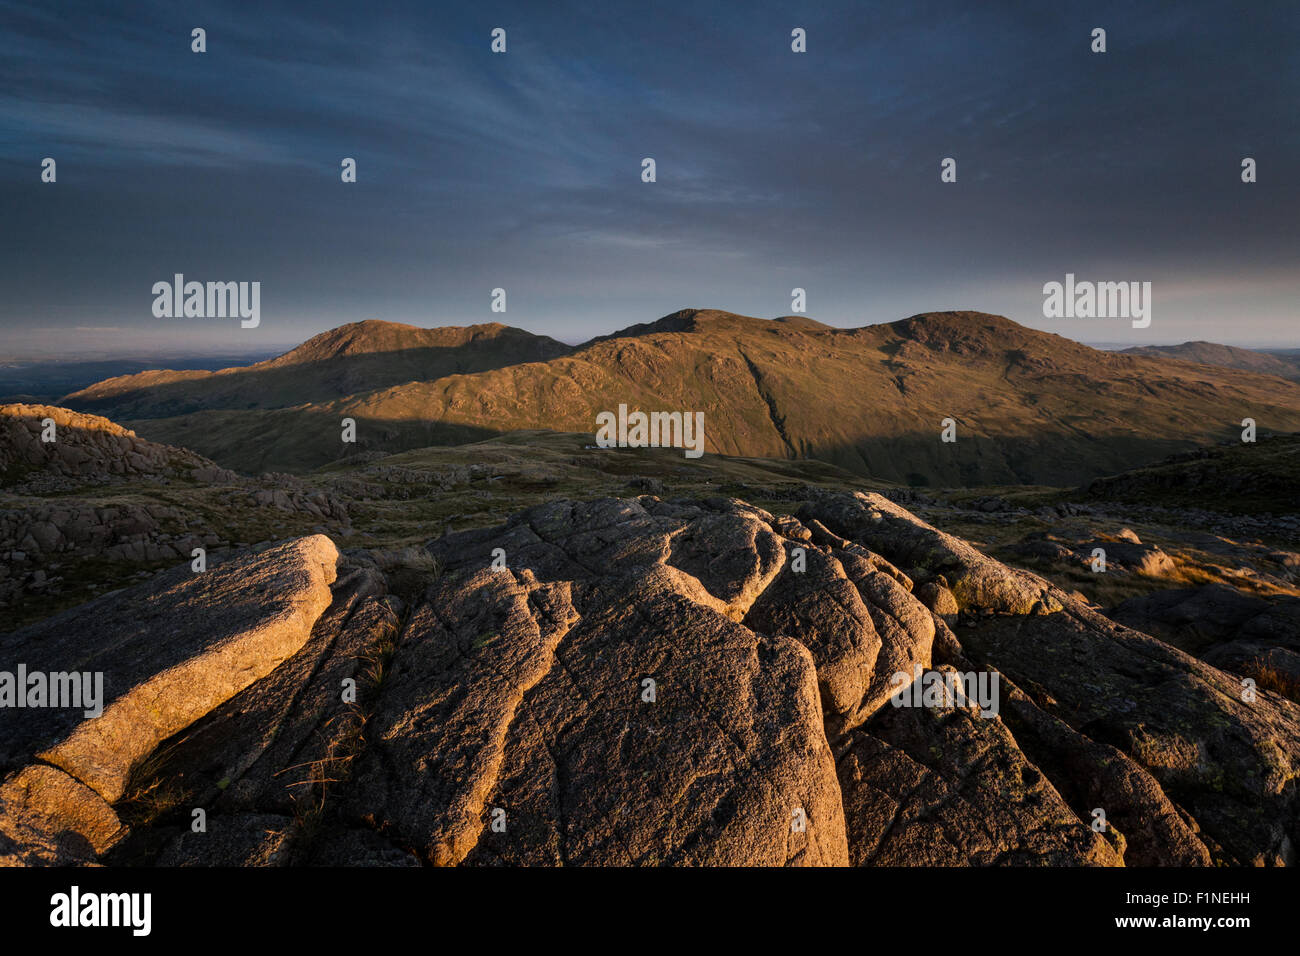 Cold Pike crags view across to Wetherlam, English Lake District, in the evening light, at sunset - Stock Image